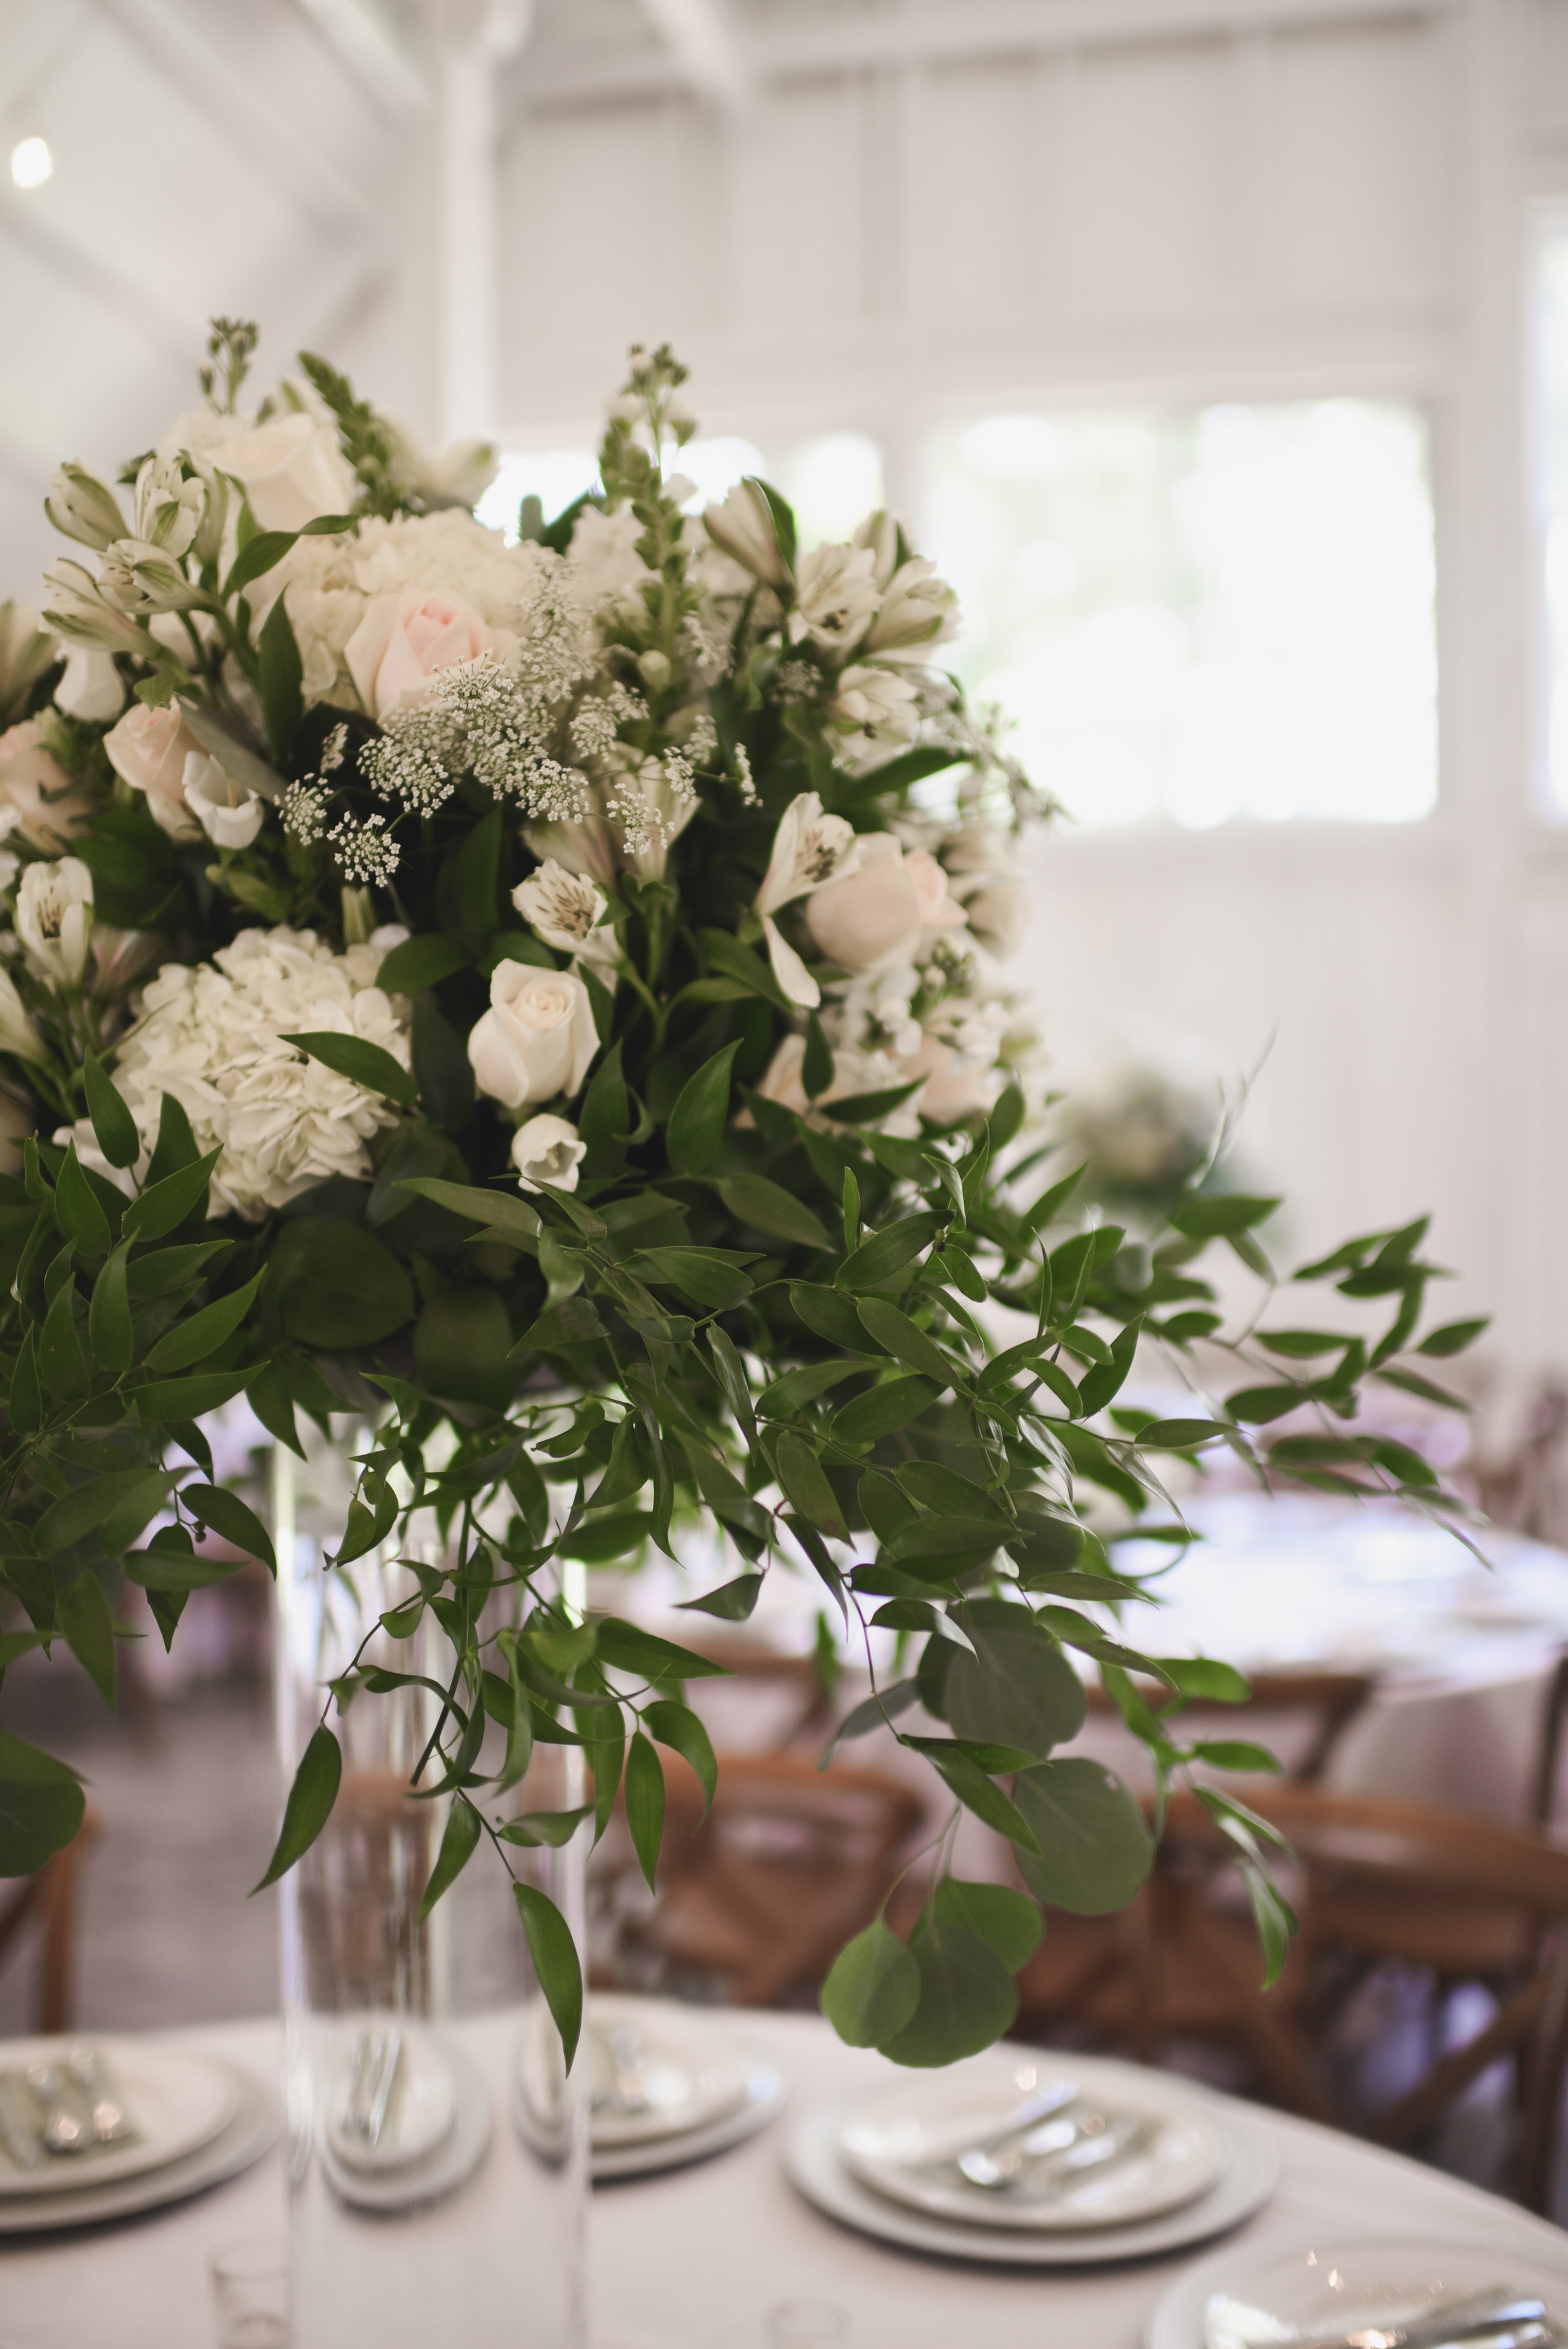 wedding flowers, bridal flowers, event design, floral design, Arkansas wedding, bride and groom, white centerpiece, kindred collective, kindred barn